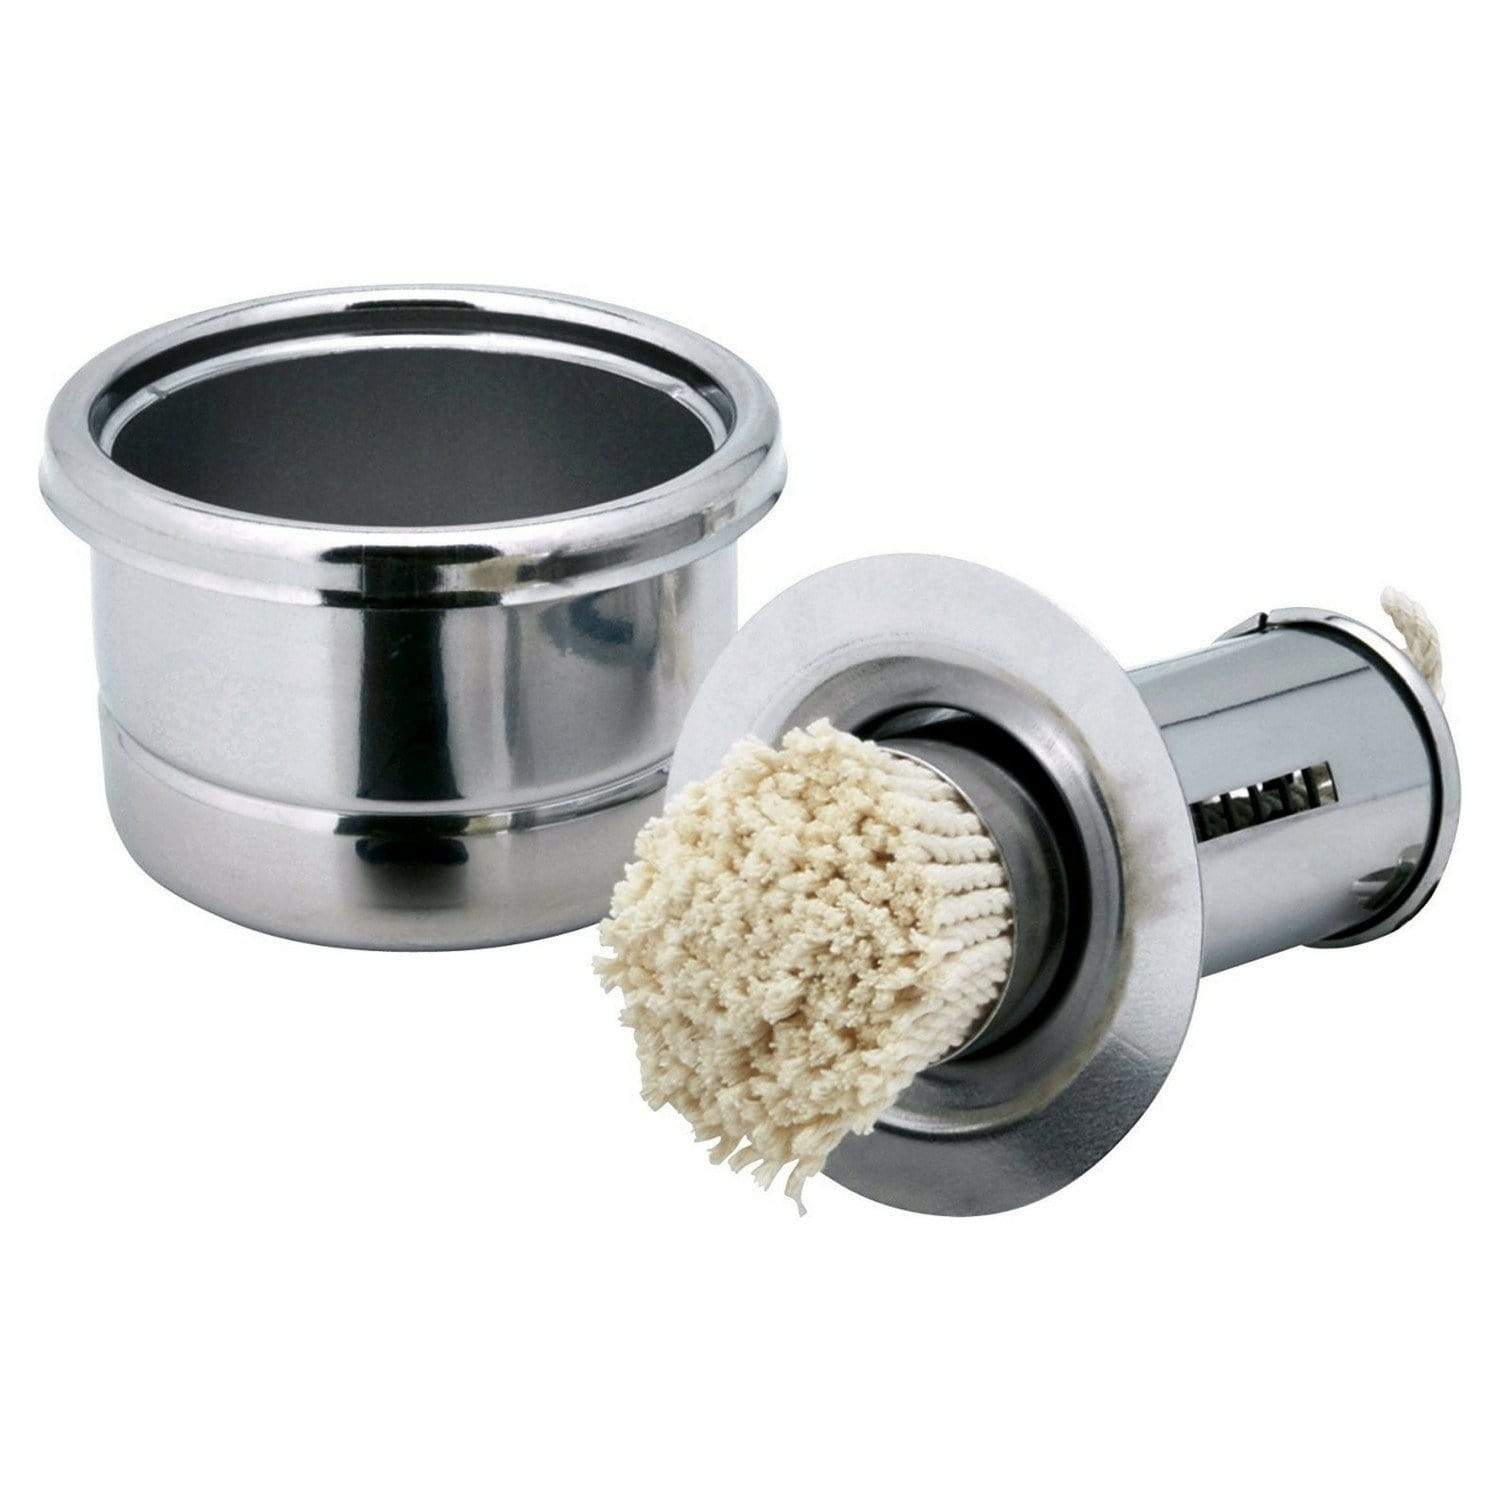 Ichibishi Stainless Steel Takoyaki Basting Mop Oil Dispenser with Removable Cotton Head Small Basting Mops